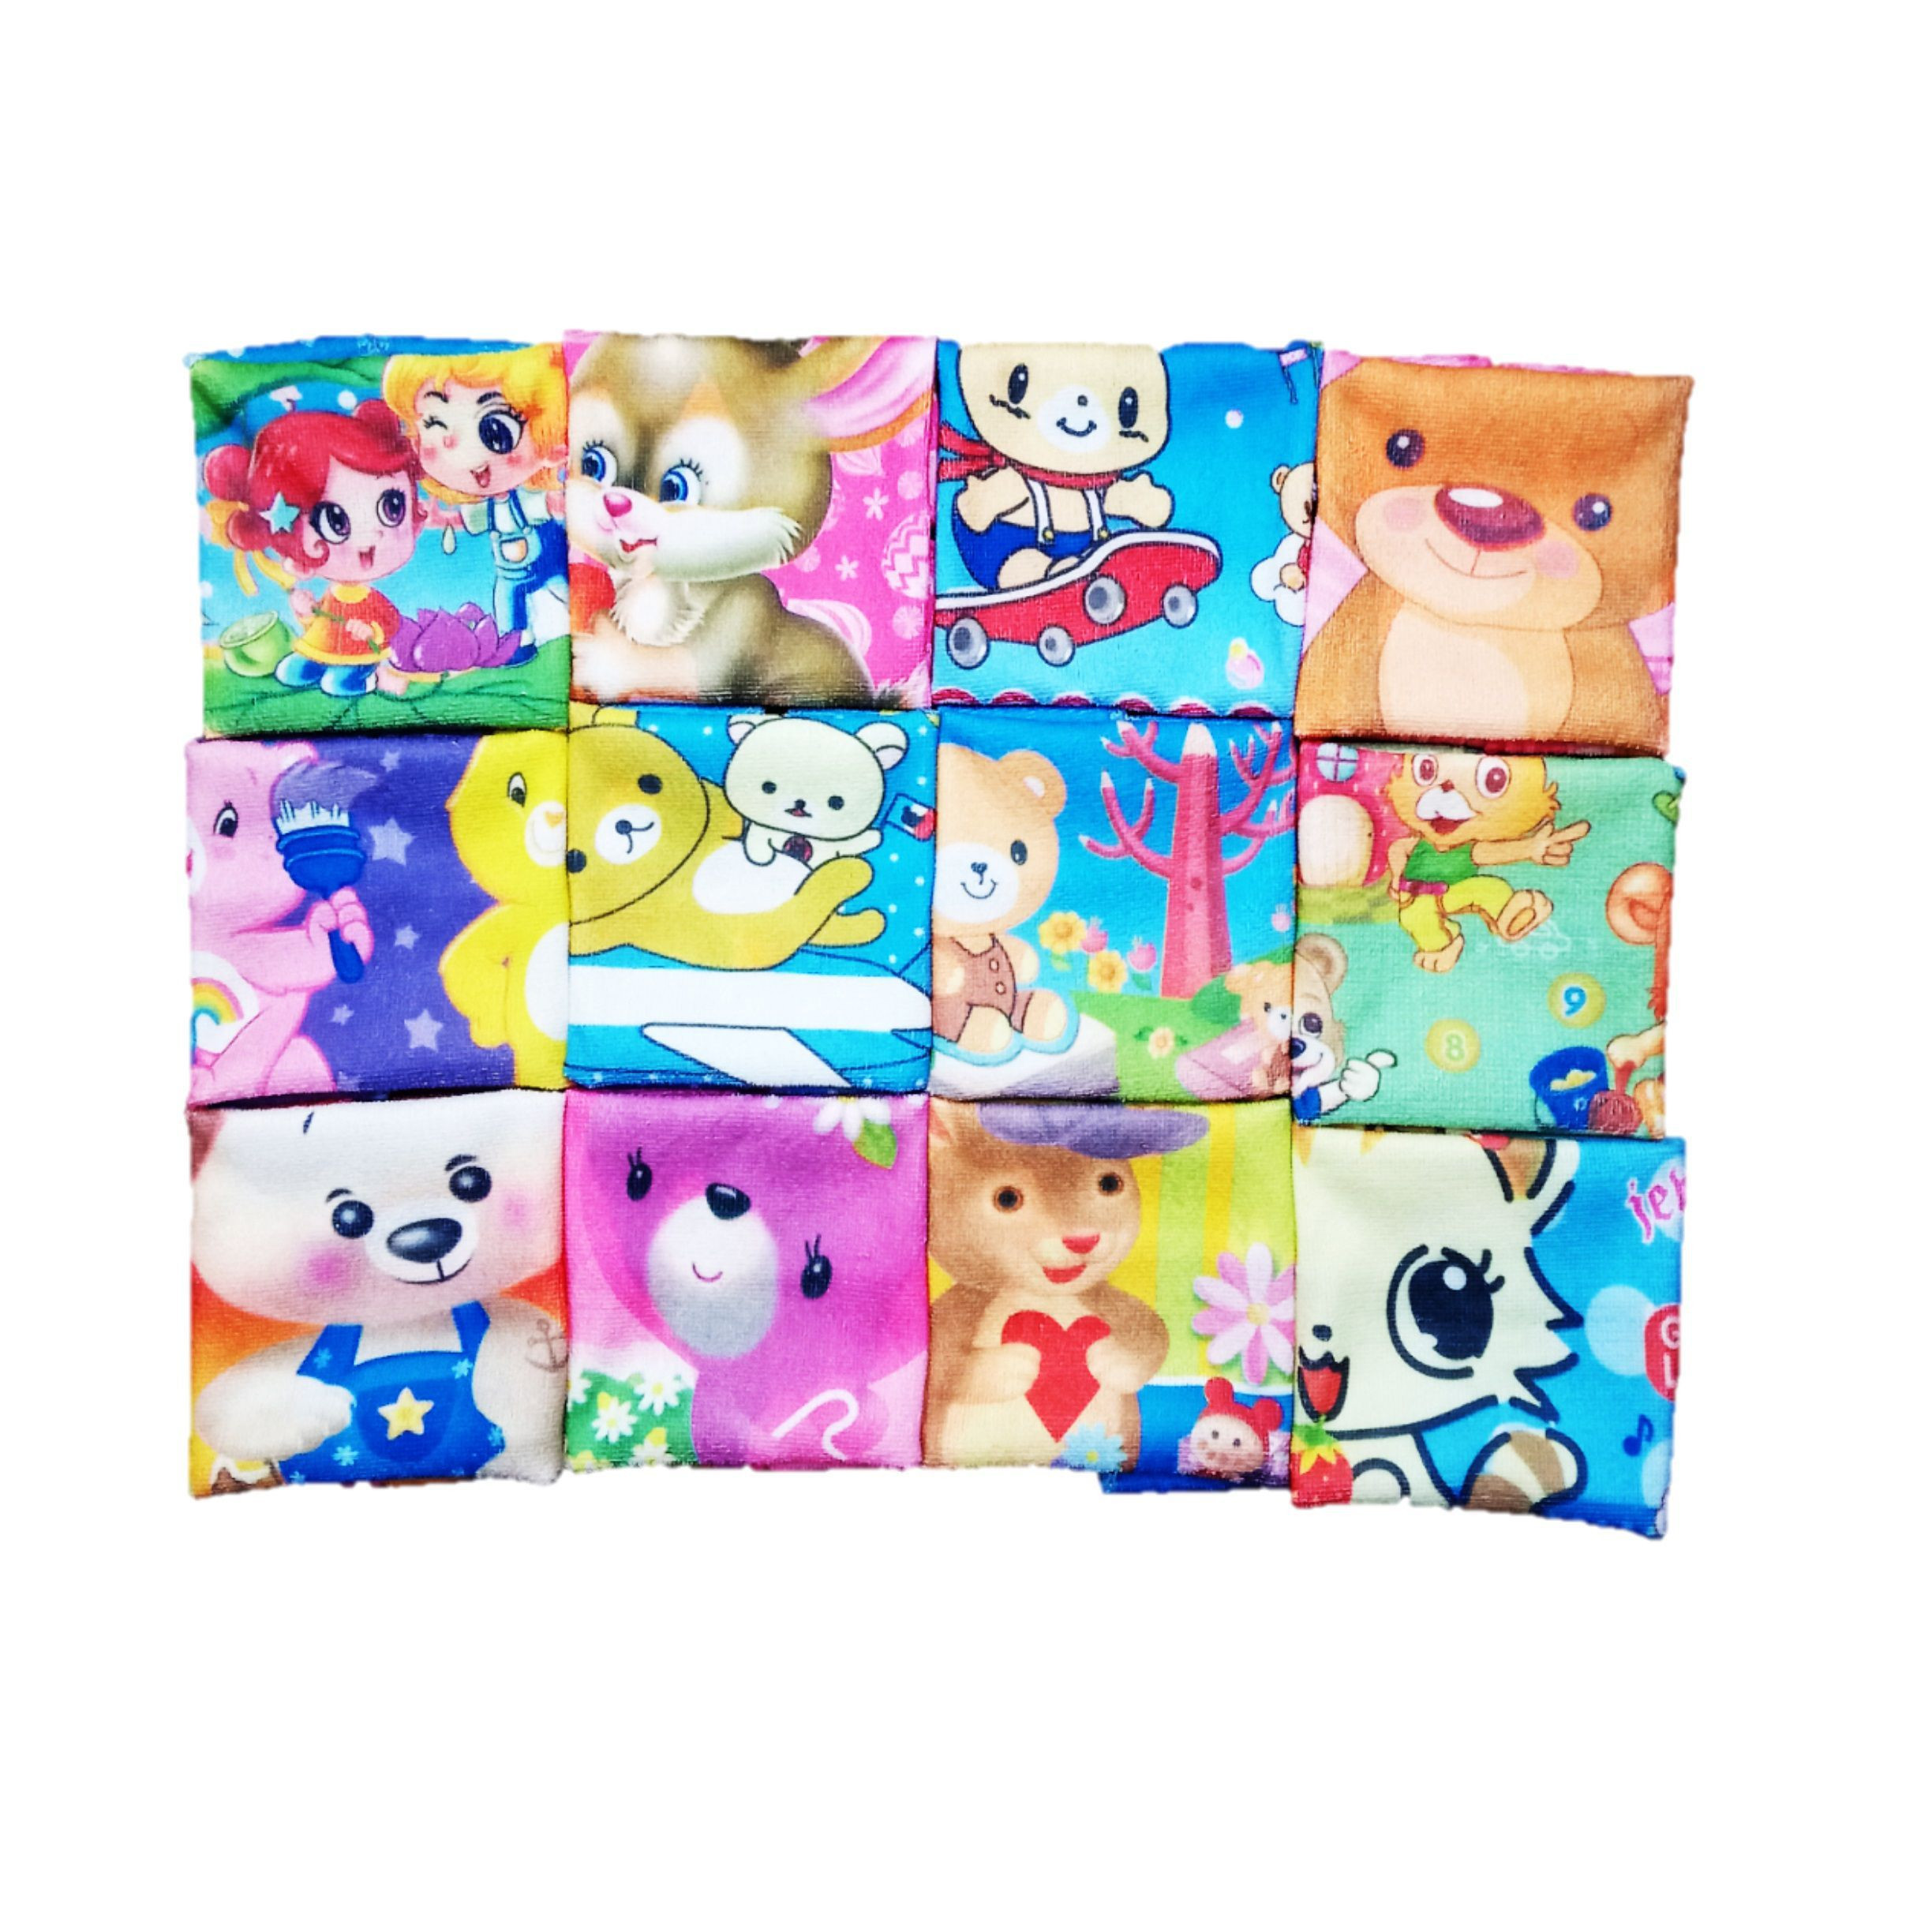 Yorker Luxury Super Soft Towel Colorful Printed Handkerchief Hankies with different Cartoons for Women